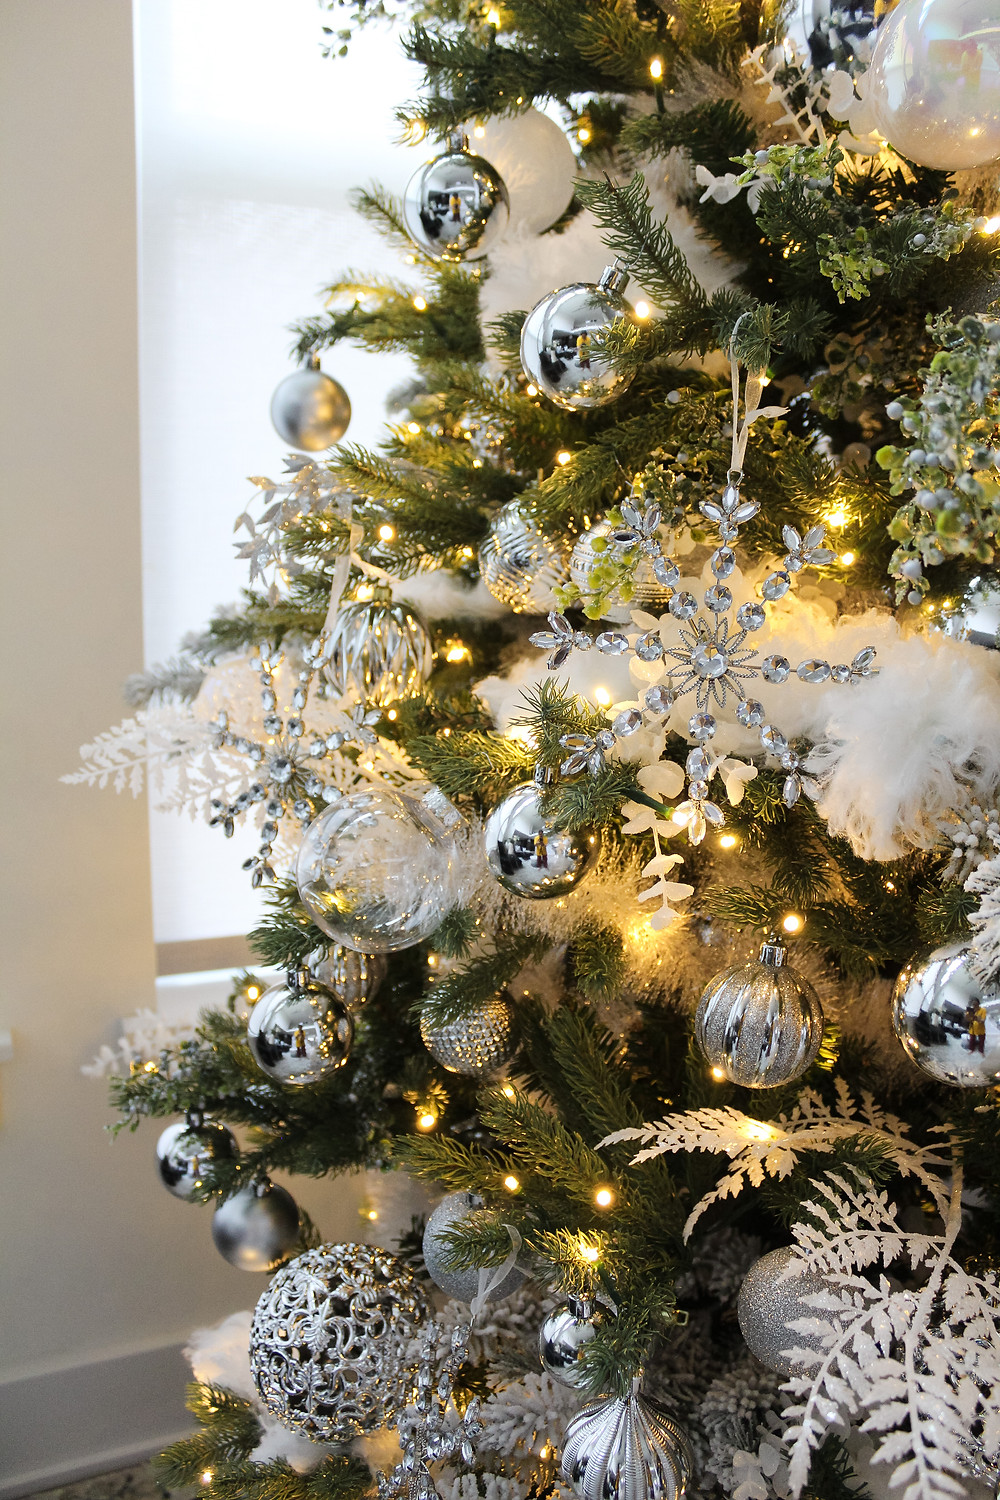 Create a stunning white snowcapped Christmas tree filled with clear, white and silver ornaments. Use white fern and eucalyptus stems and finish this tree off with snowflake ornaments. You are on your way to a White Christmas with this gorgeous modern tree! #christmasdecor #holidaydecor #whitechristmas